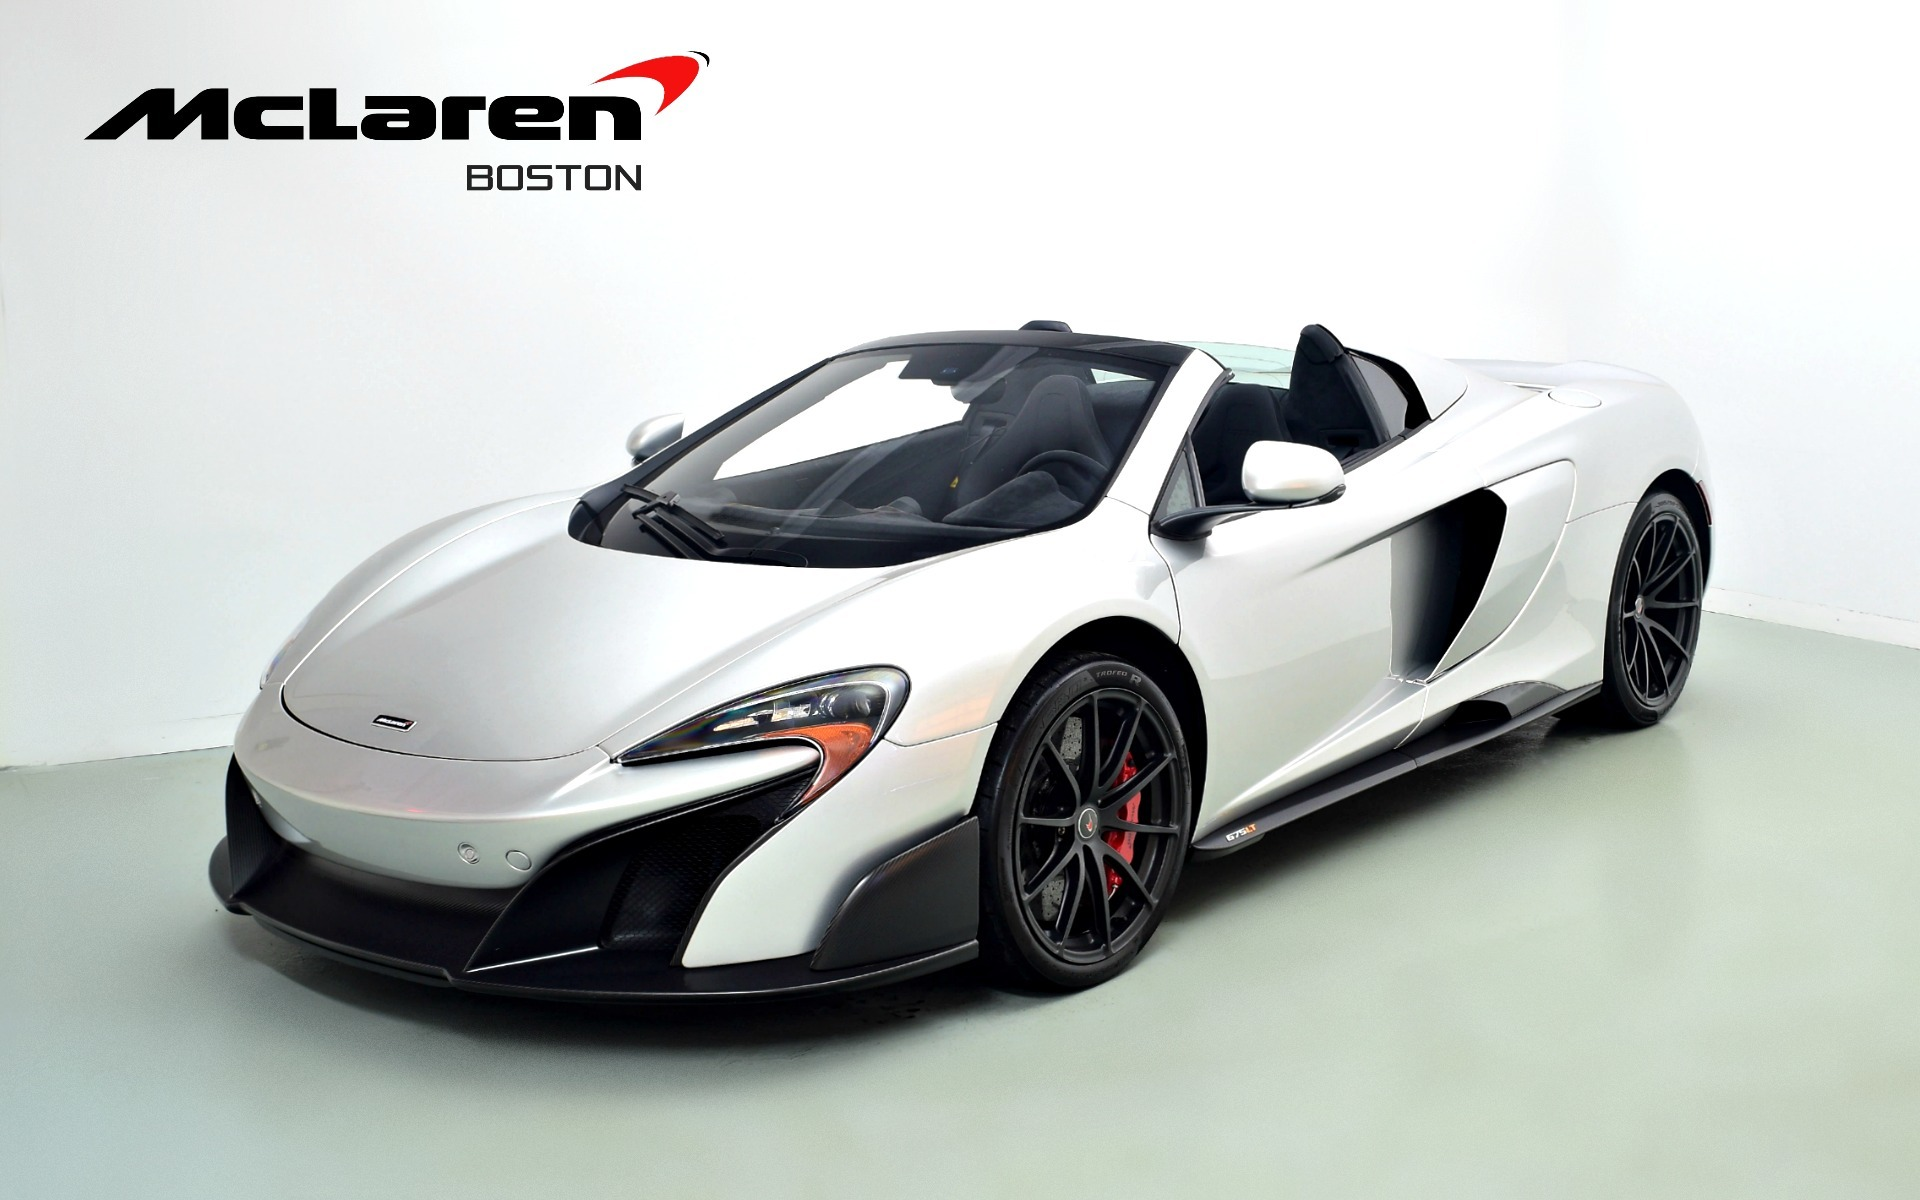 https://www.mclarenboston.com/galleria_images/397/397_main_l.jpg